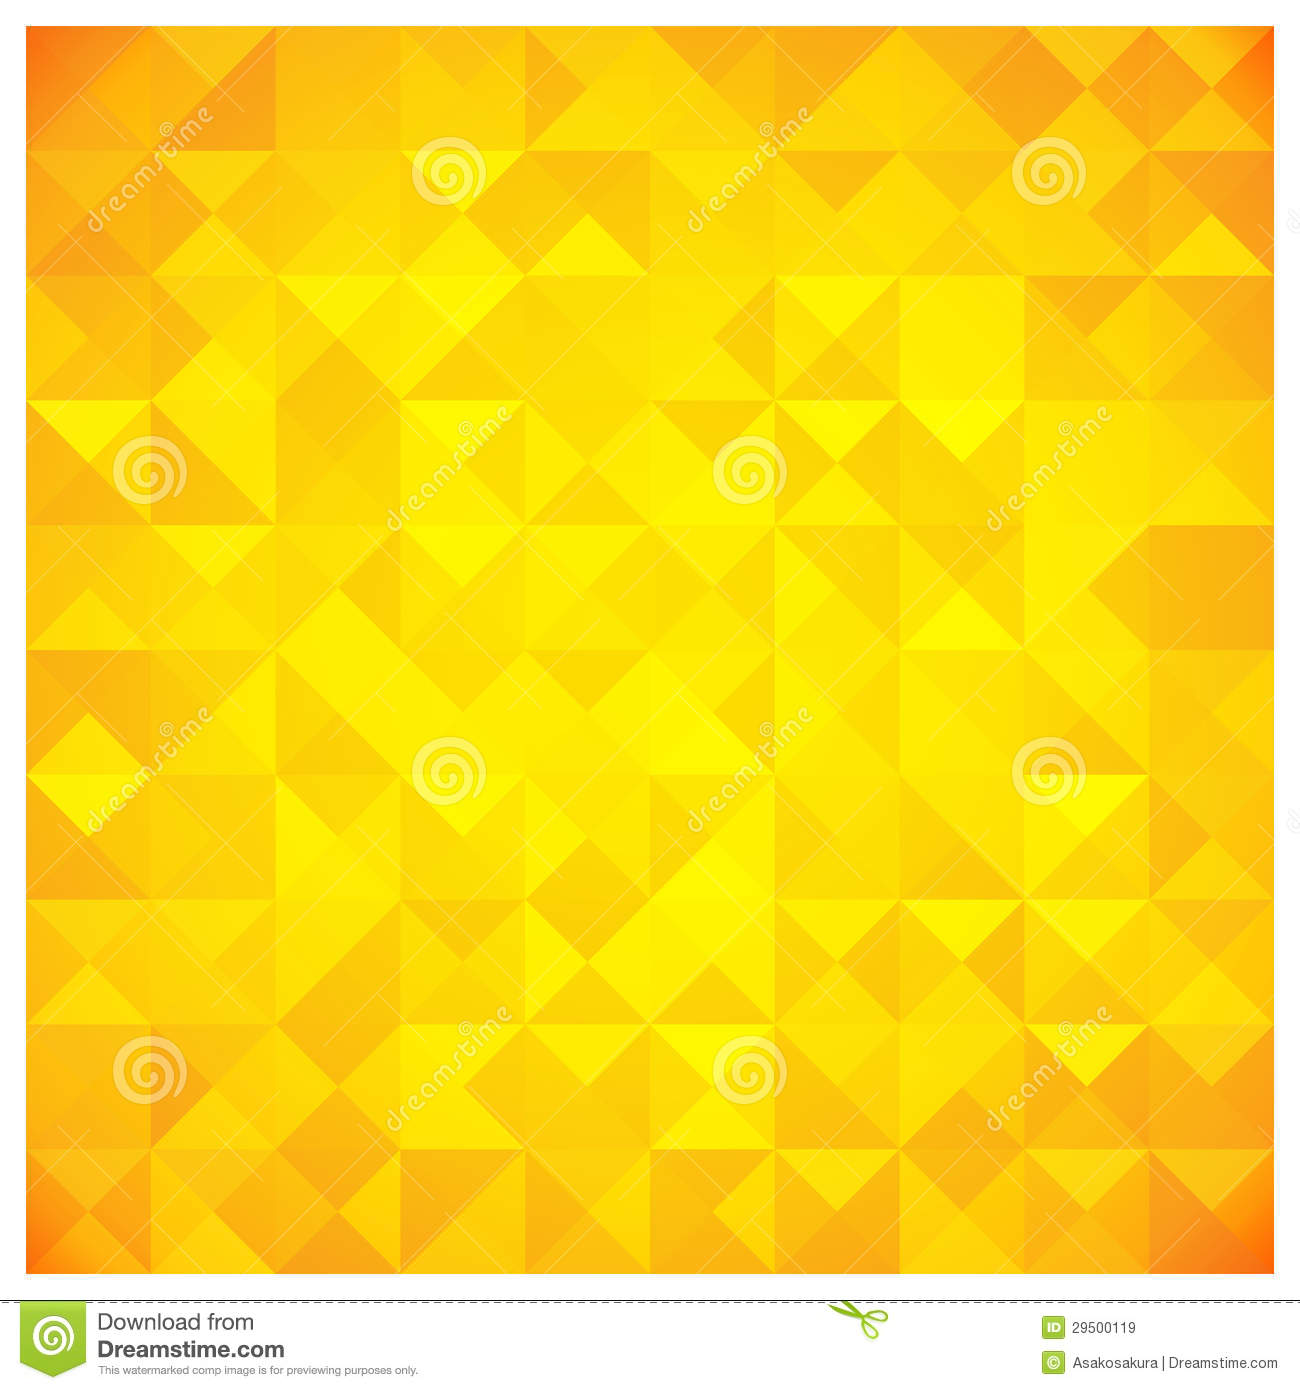 Free Fall Colors Wallpaper Triangle And Square Yellow Abstract Pattern Royalty Free